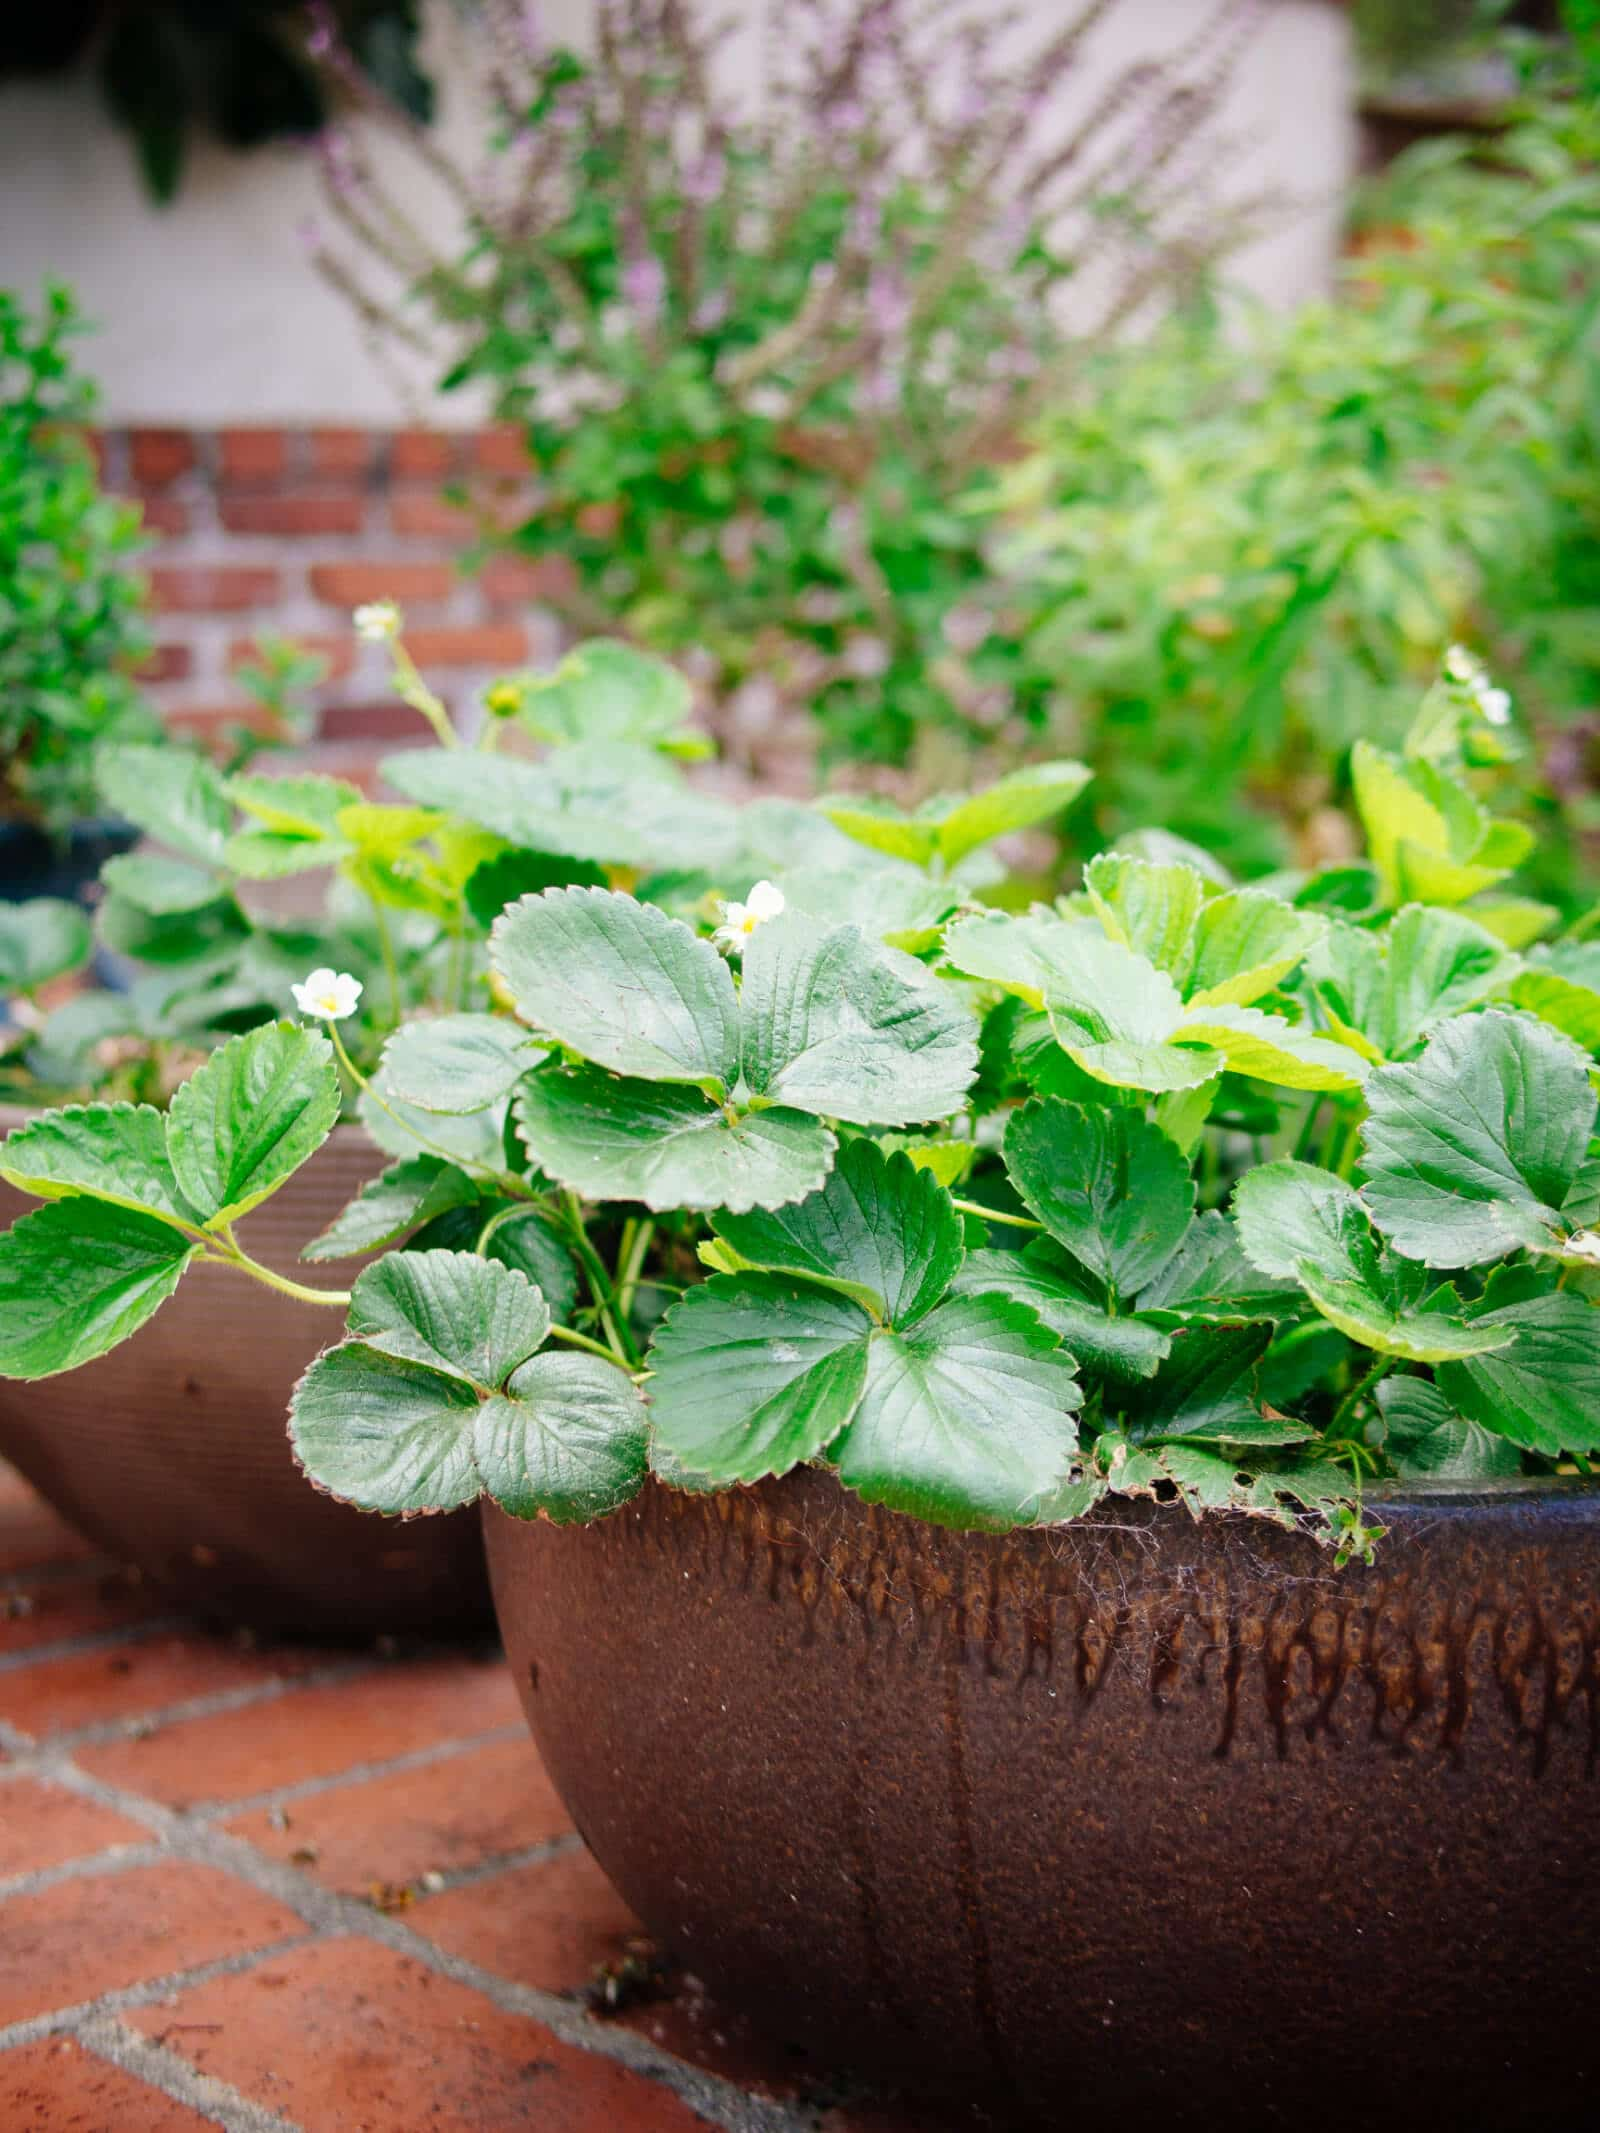 Strawberry plants do well in wide, shallow containers